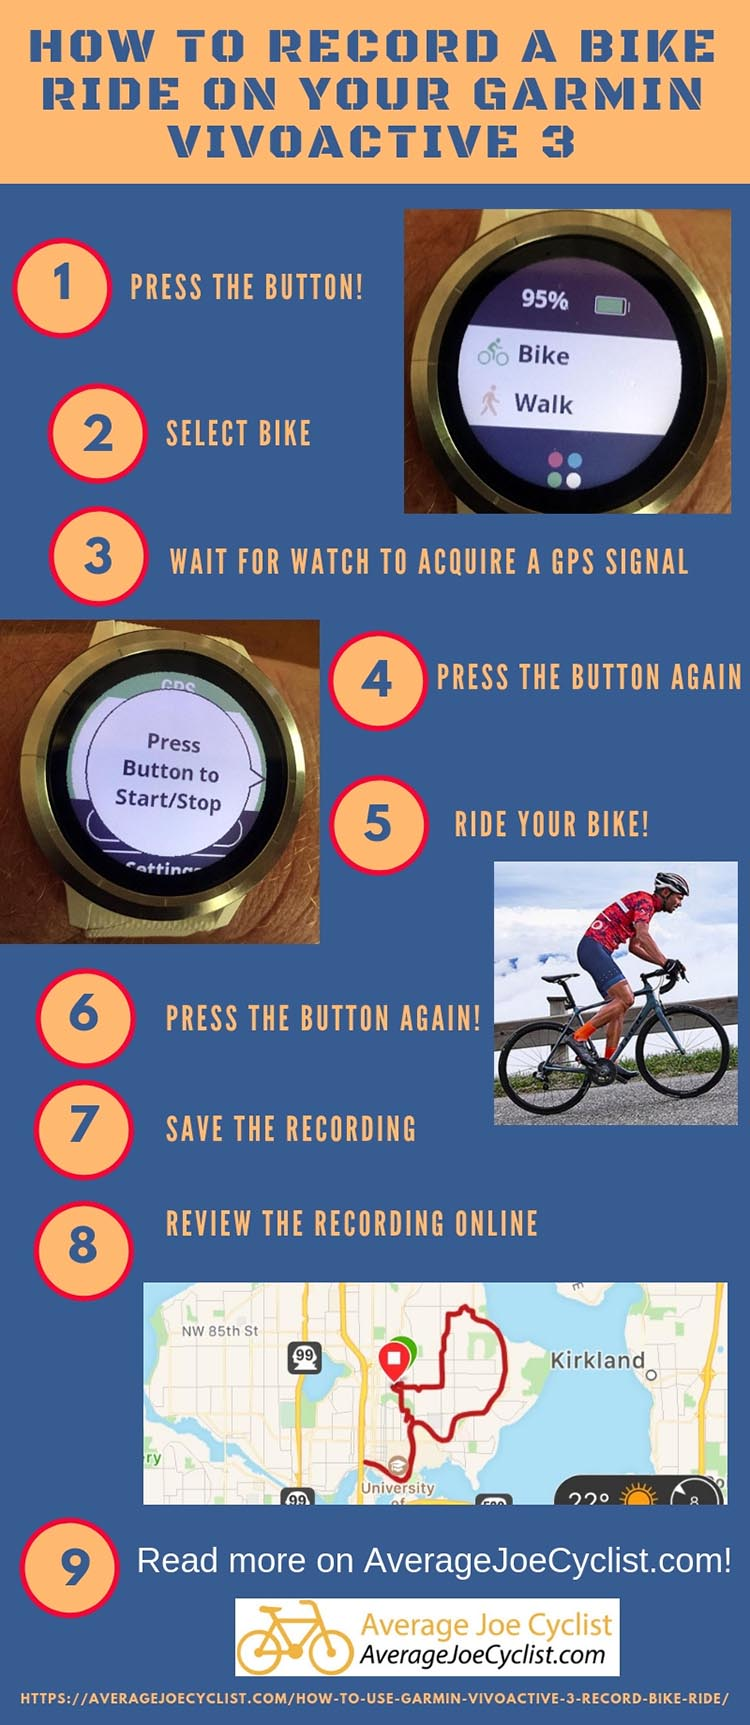 How to record a bike ride with a Garmin Vivoactive 3